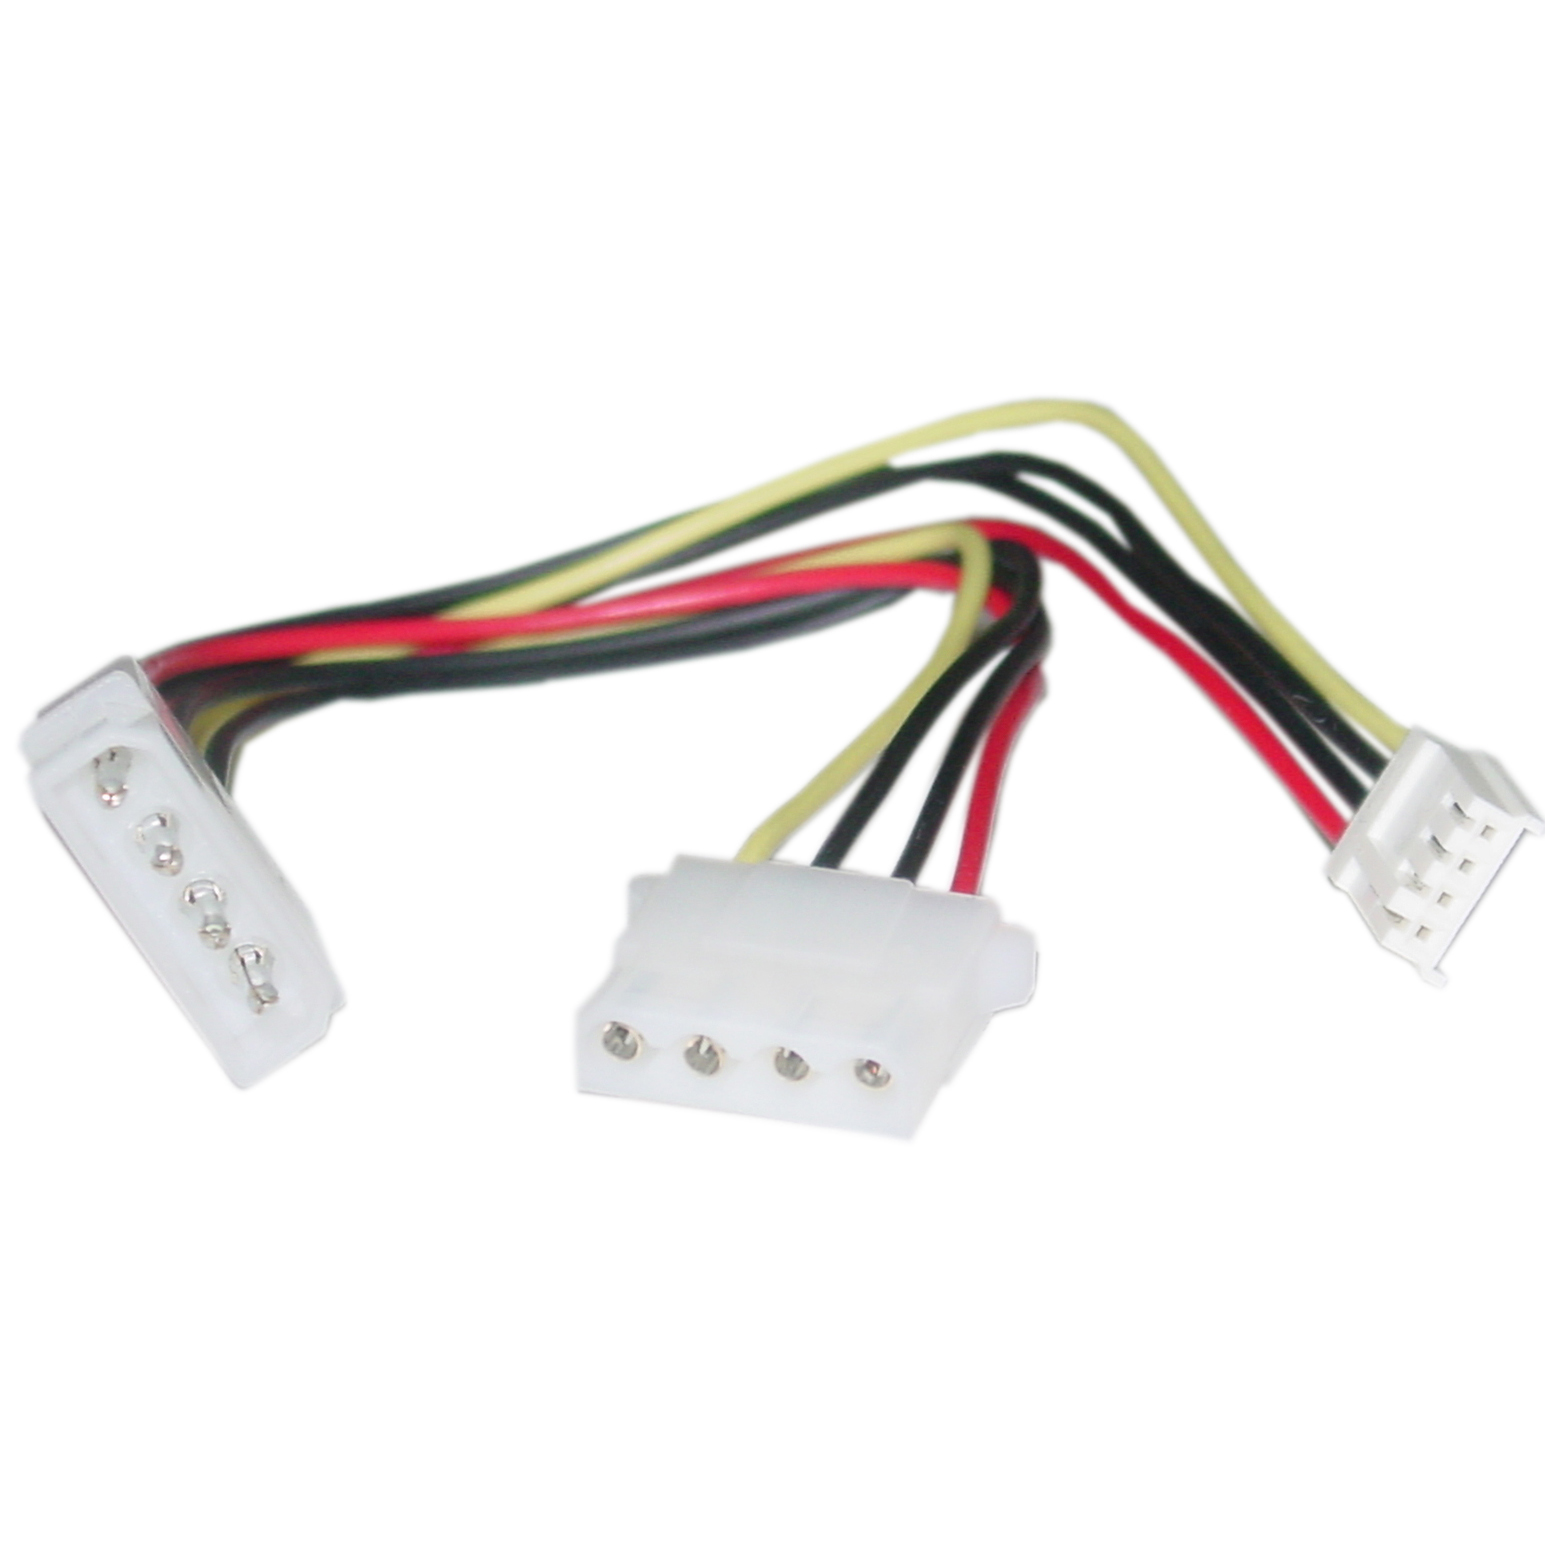 4 Pin Connector Power Supply 4 Pin Molex Power y Cable